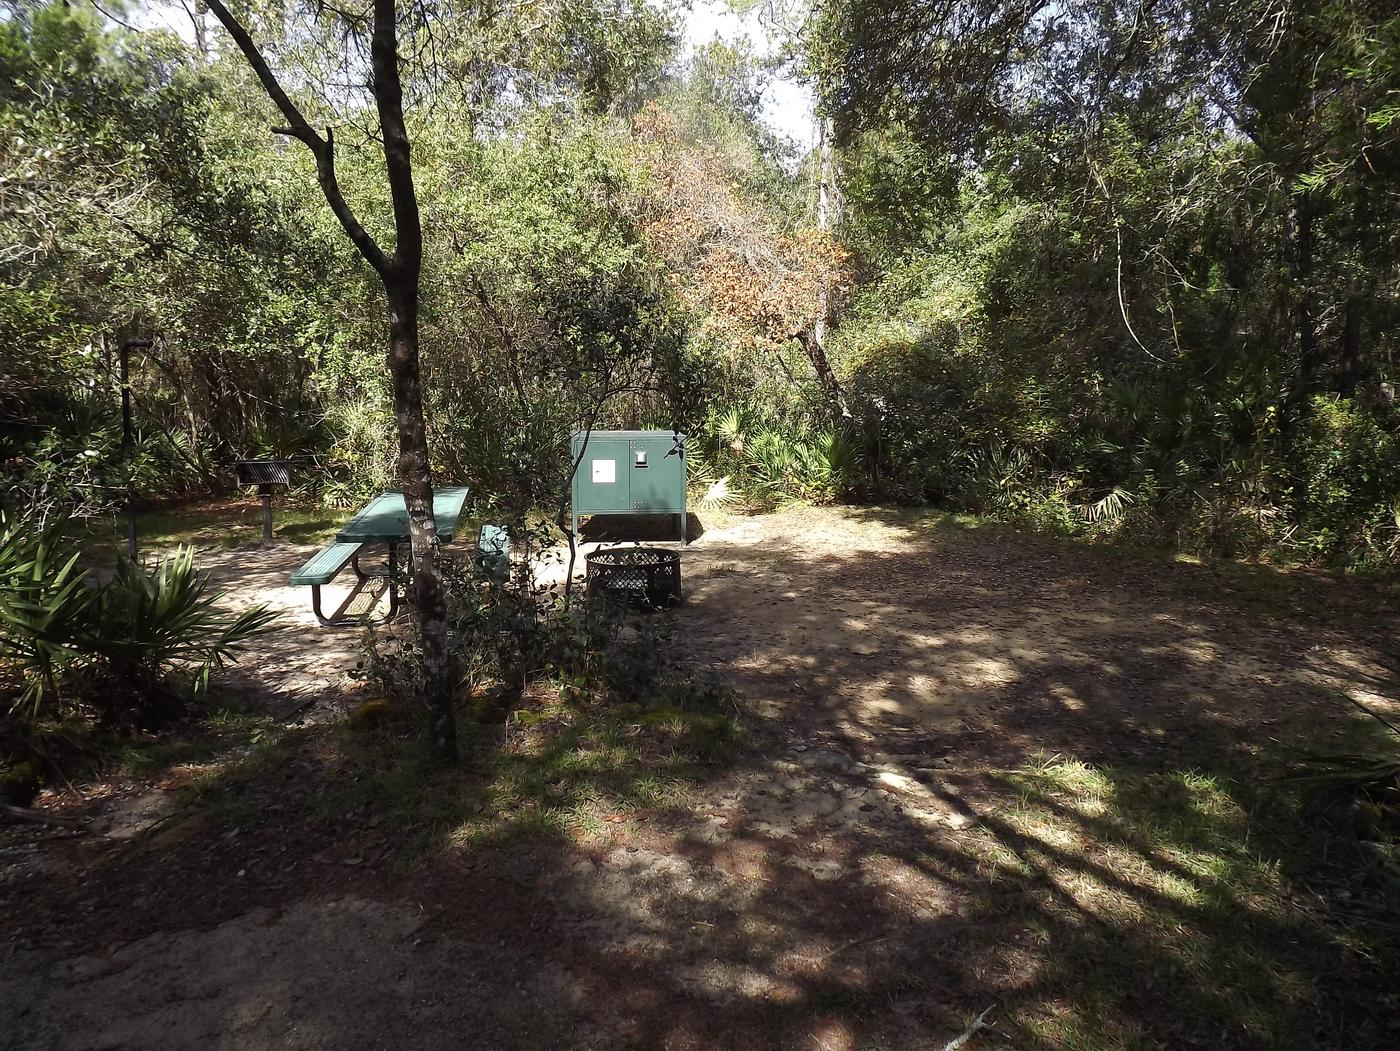 Juniper Springs Recreation Area site #40 tropical setting with picnic area and camping space.